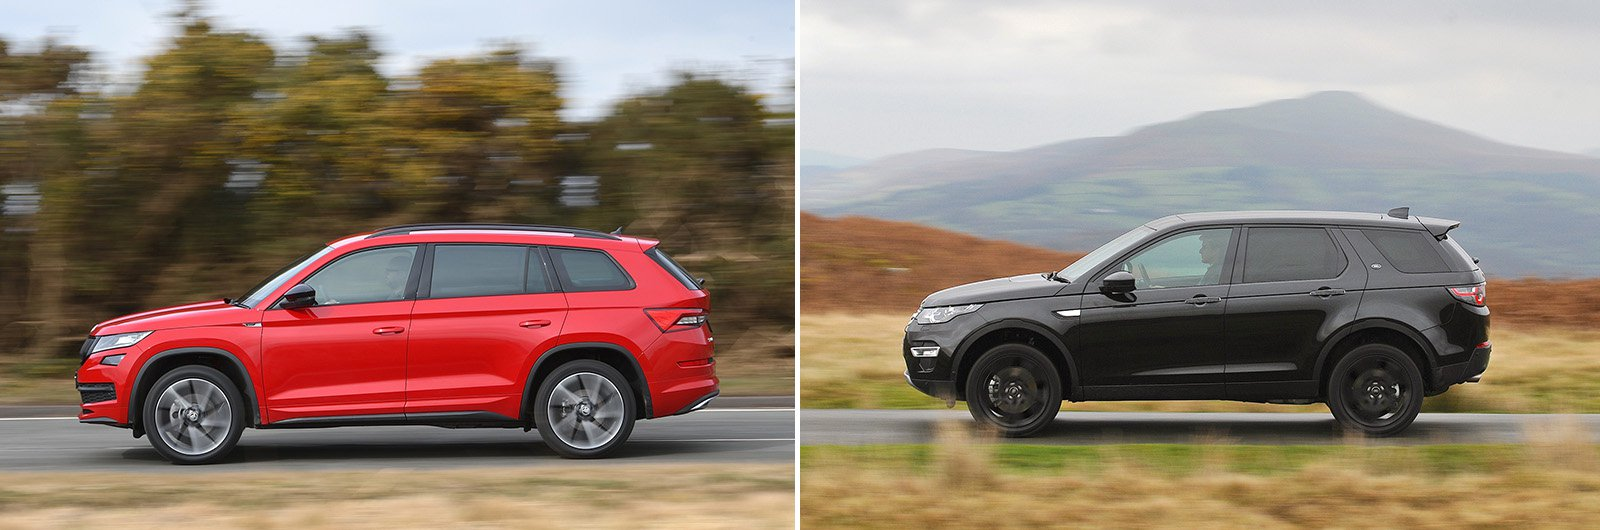 New Skoda Kodiaq vs used Land Rover Discovery Sport: which is best?